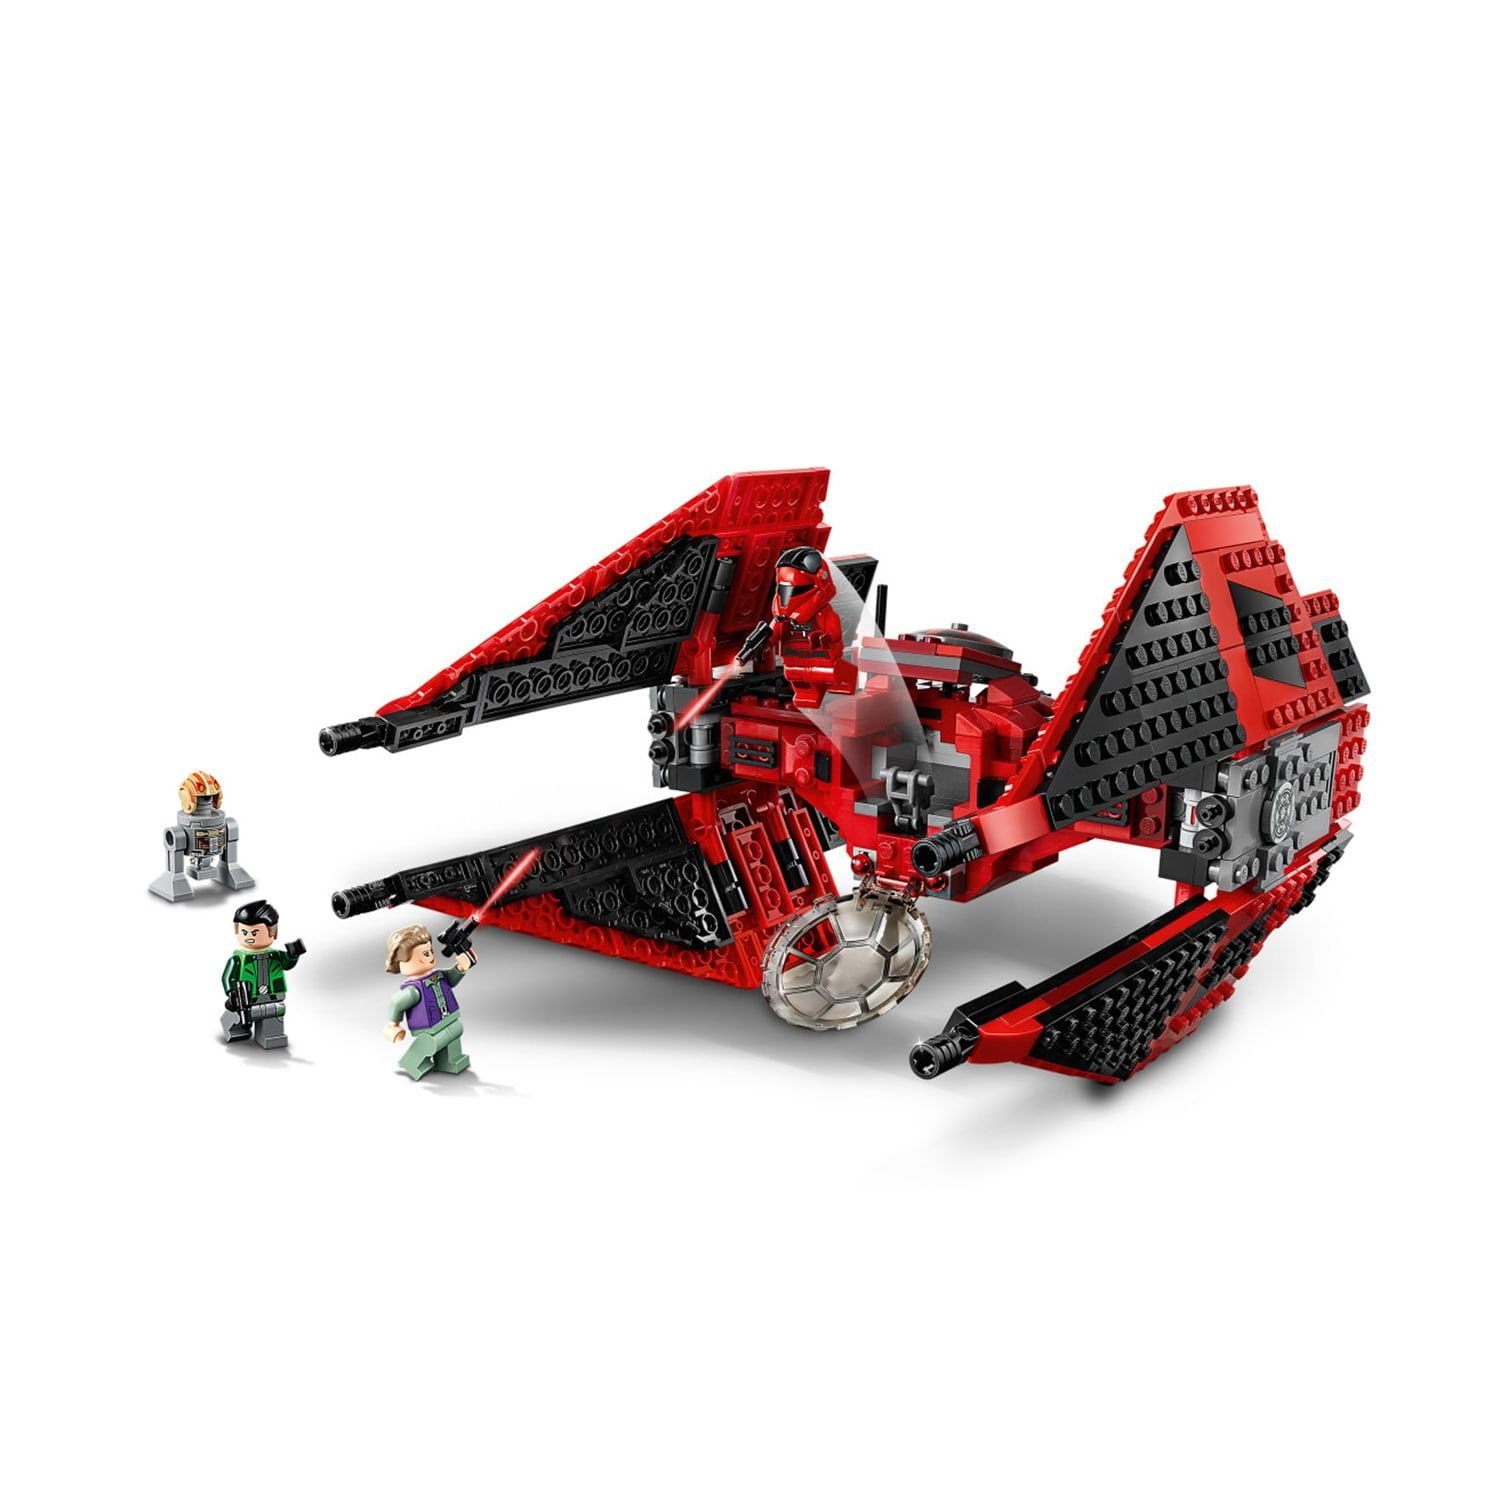 IN STOCK Lego Star Wars Major Vonreg/'s TIE Fighter 75240